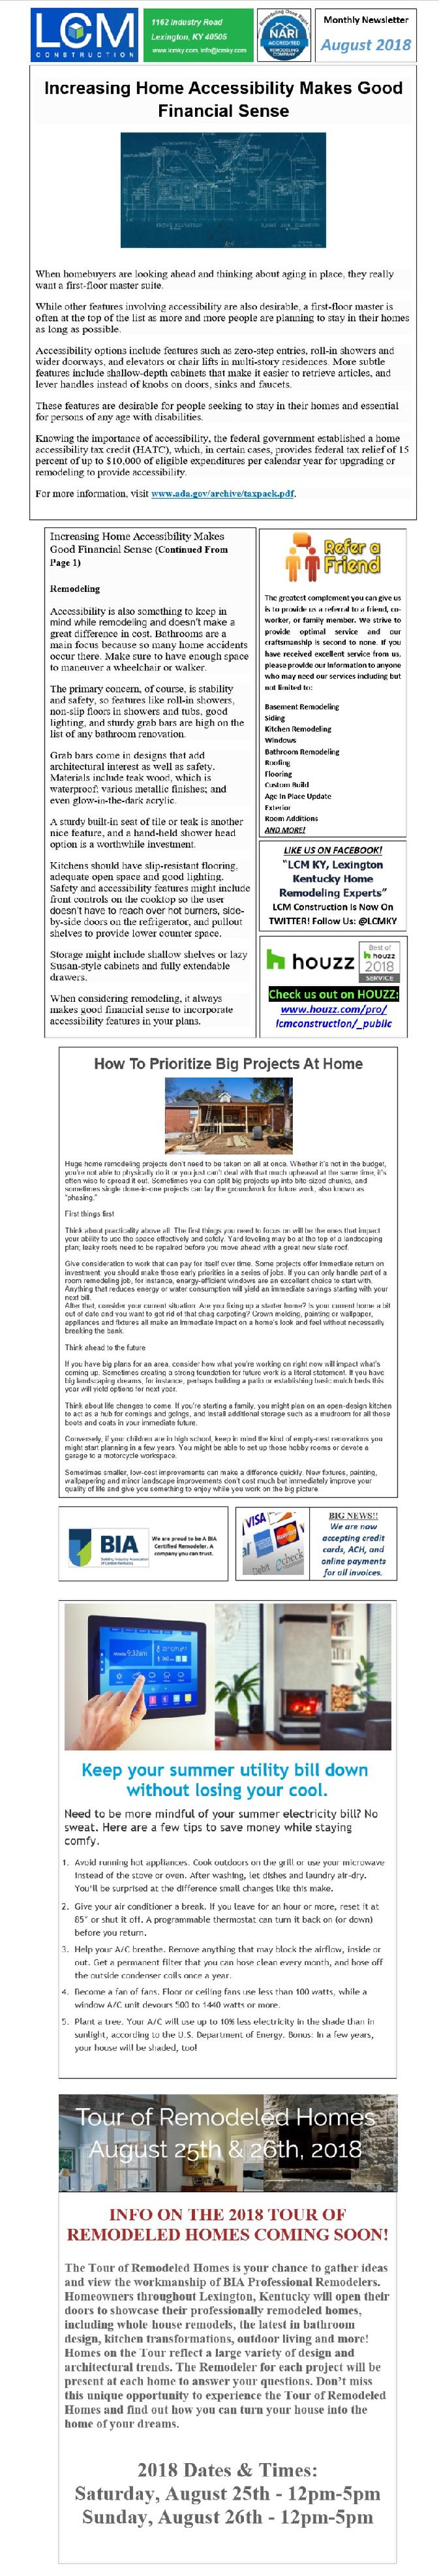 Lexington Kentucky Home Remodeling Experts: LCM